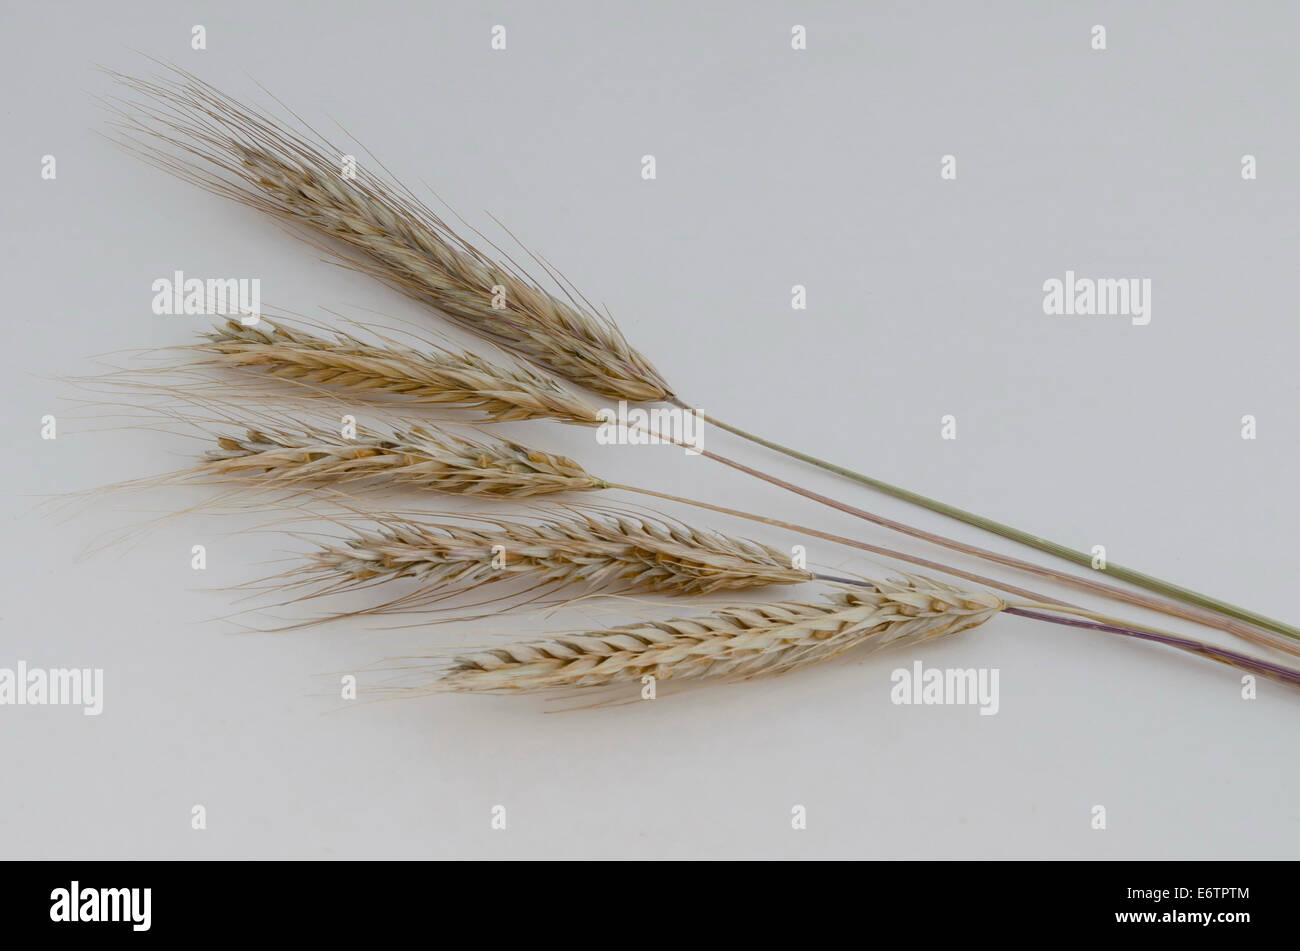 Photo close up of ear wheat  with ripe grain. - Stock Image